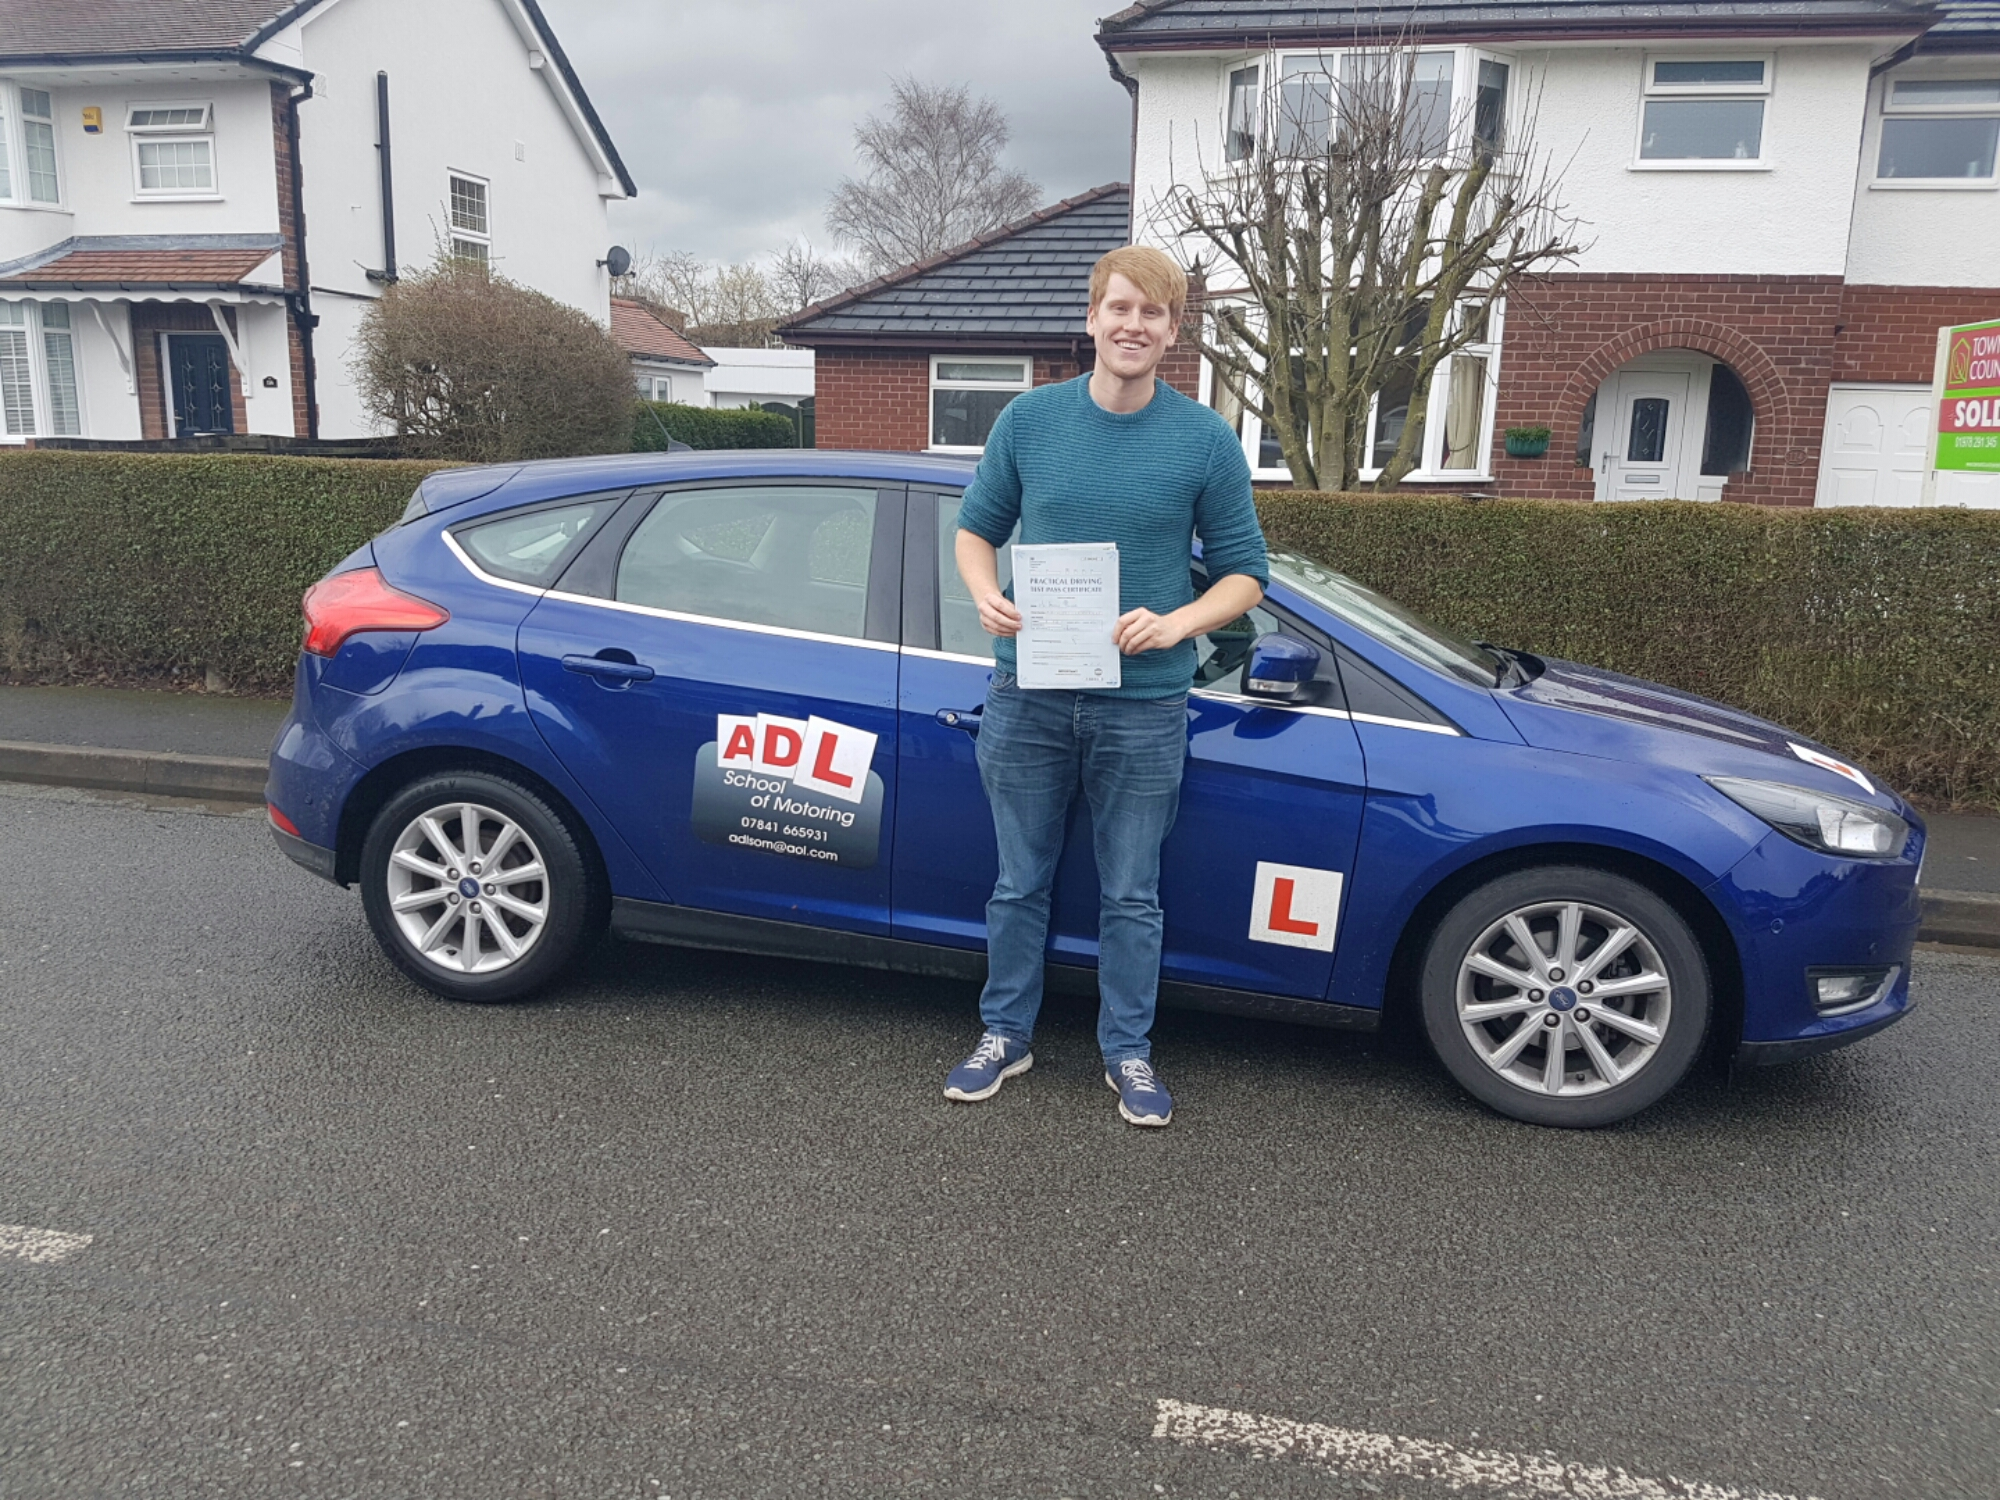 More success for ADL school of motoring today.